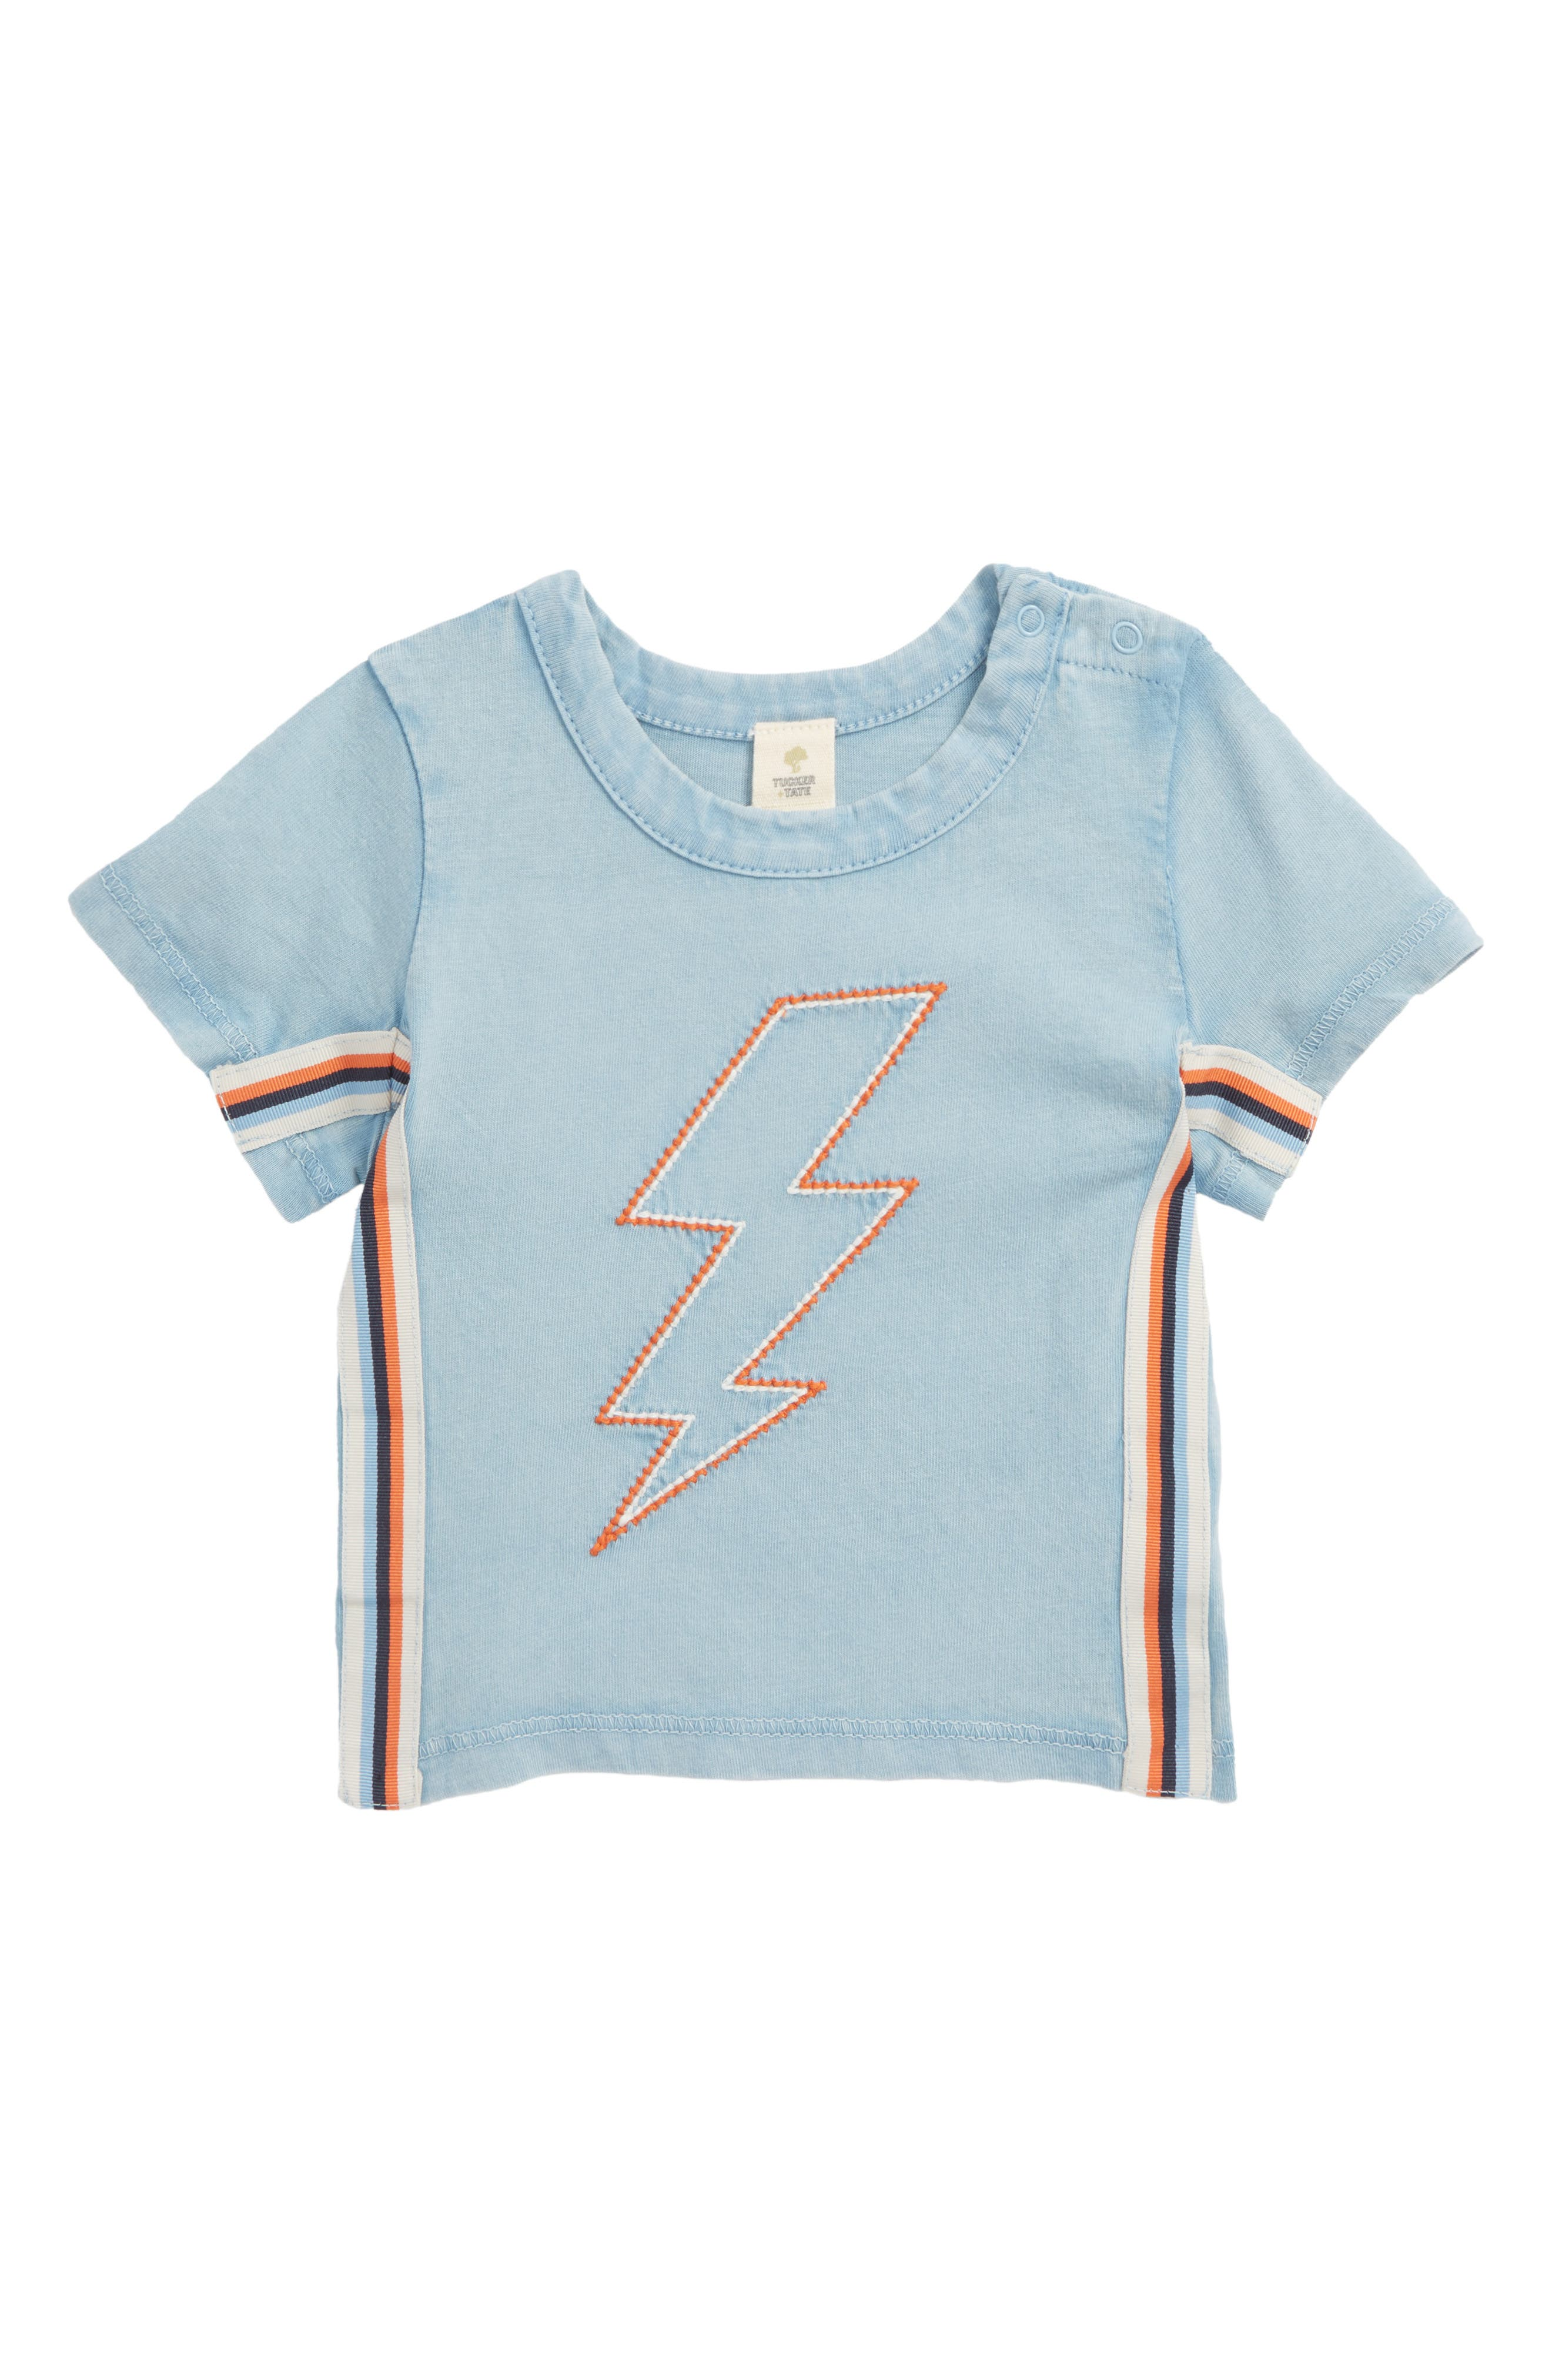 Embroidered T-Shirt,                             Main thumbnail 1, color,                             450